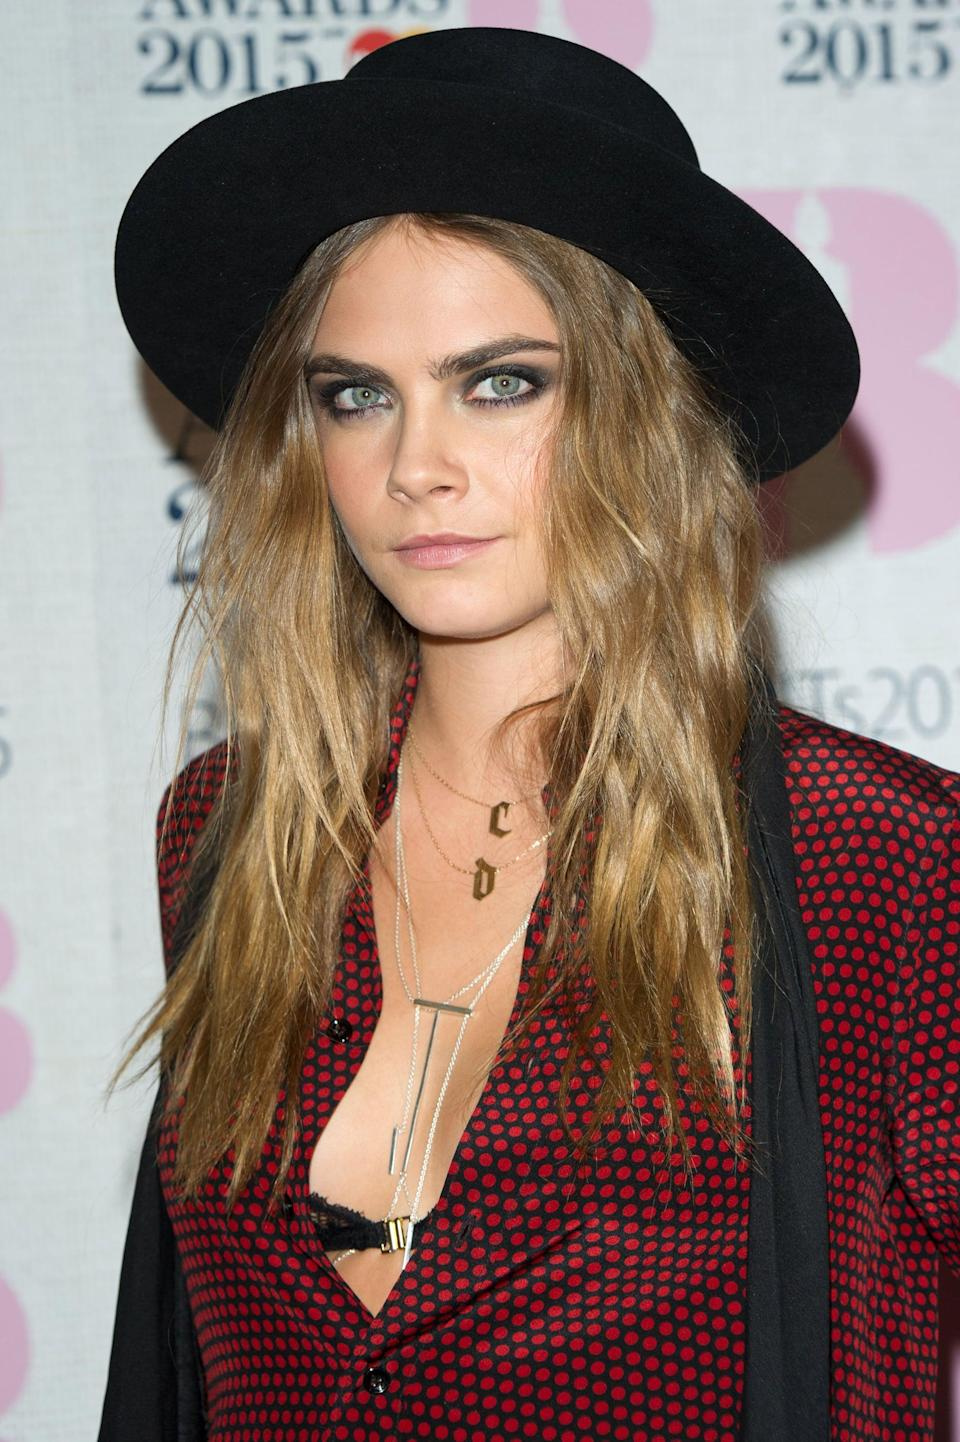 <p>Delevingne fully embraced the model-off-duty aesthetic with matte, purposefully-dishevelled waves, heavy black eye liner, and another superstylish black hat. </p>